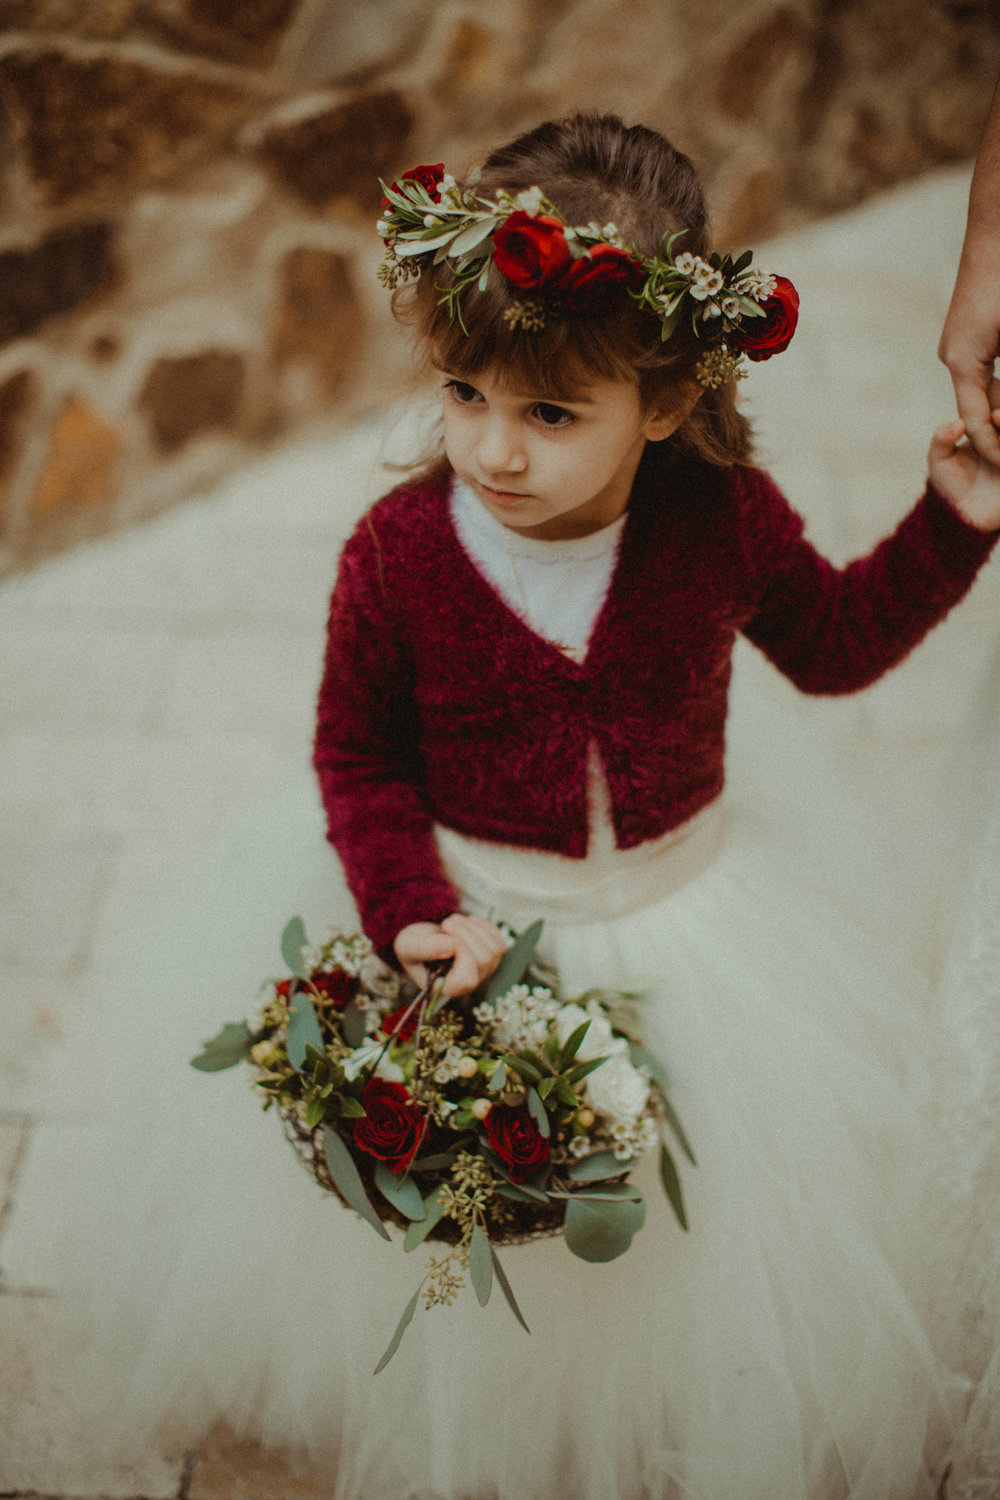 Flower girl with rose flower crown and matching crimson sweater